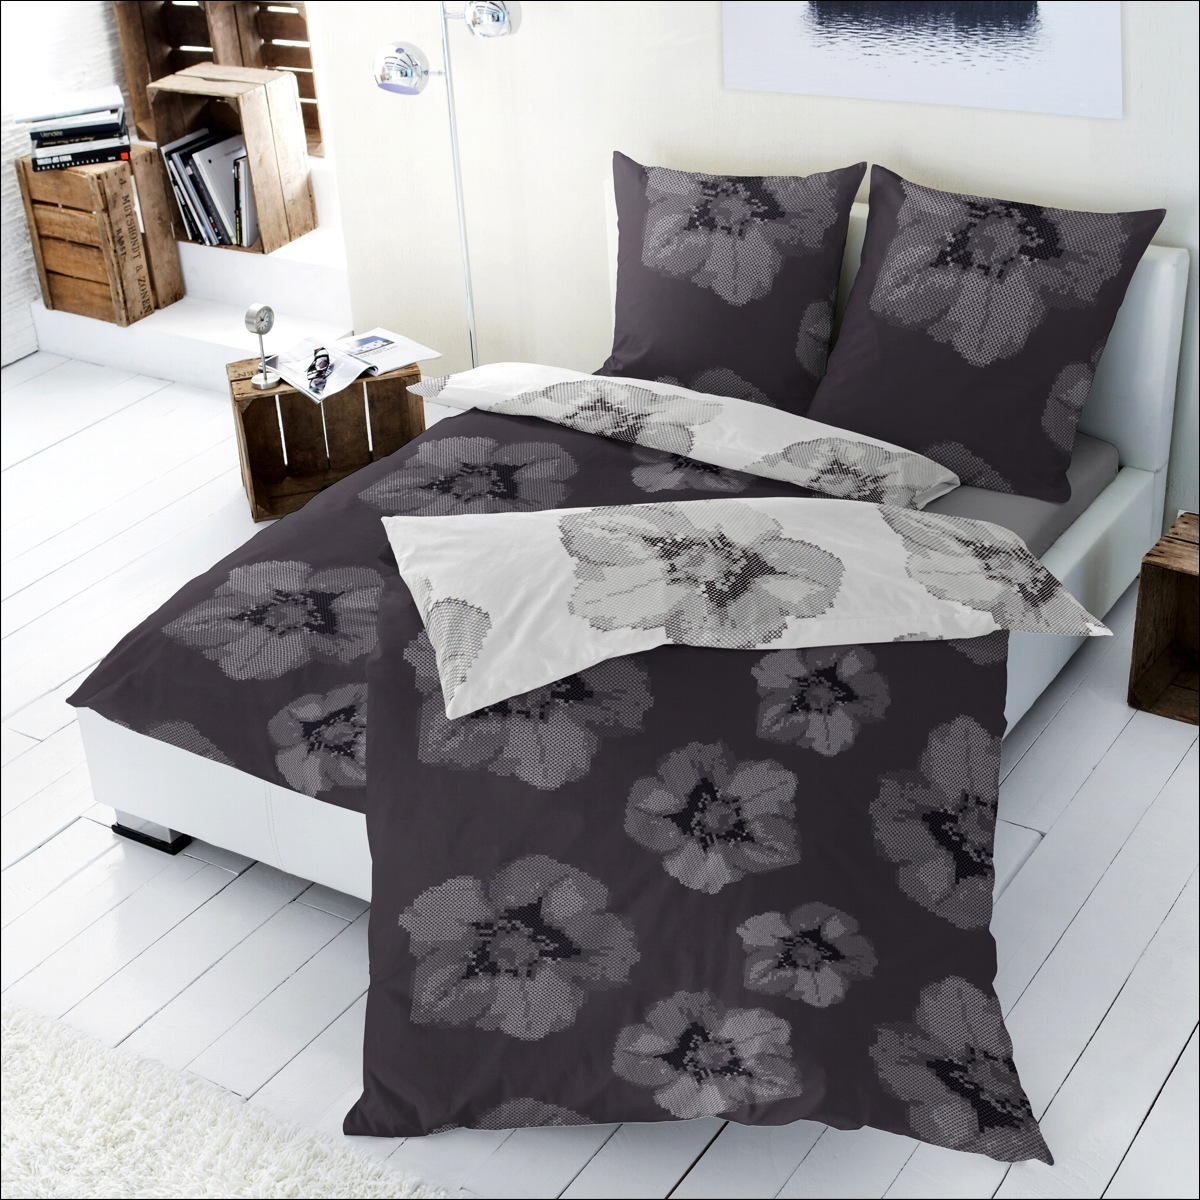 hahn renforce bettw sche 200x200 cm 125007 088 wendebettw sche wei grau blumen ebay. Black Bedroom Furniture Sets. Home Design Ideas